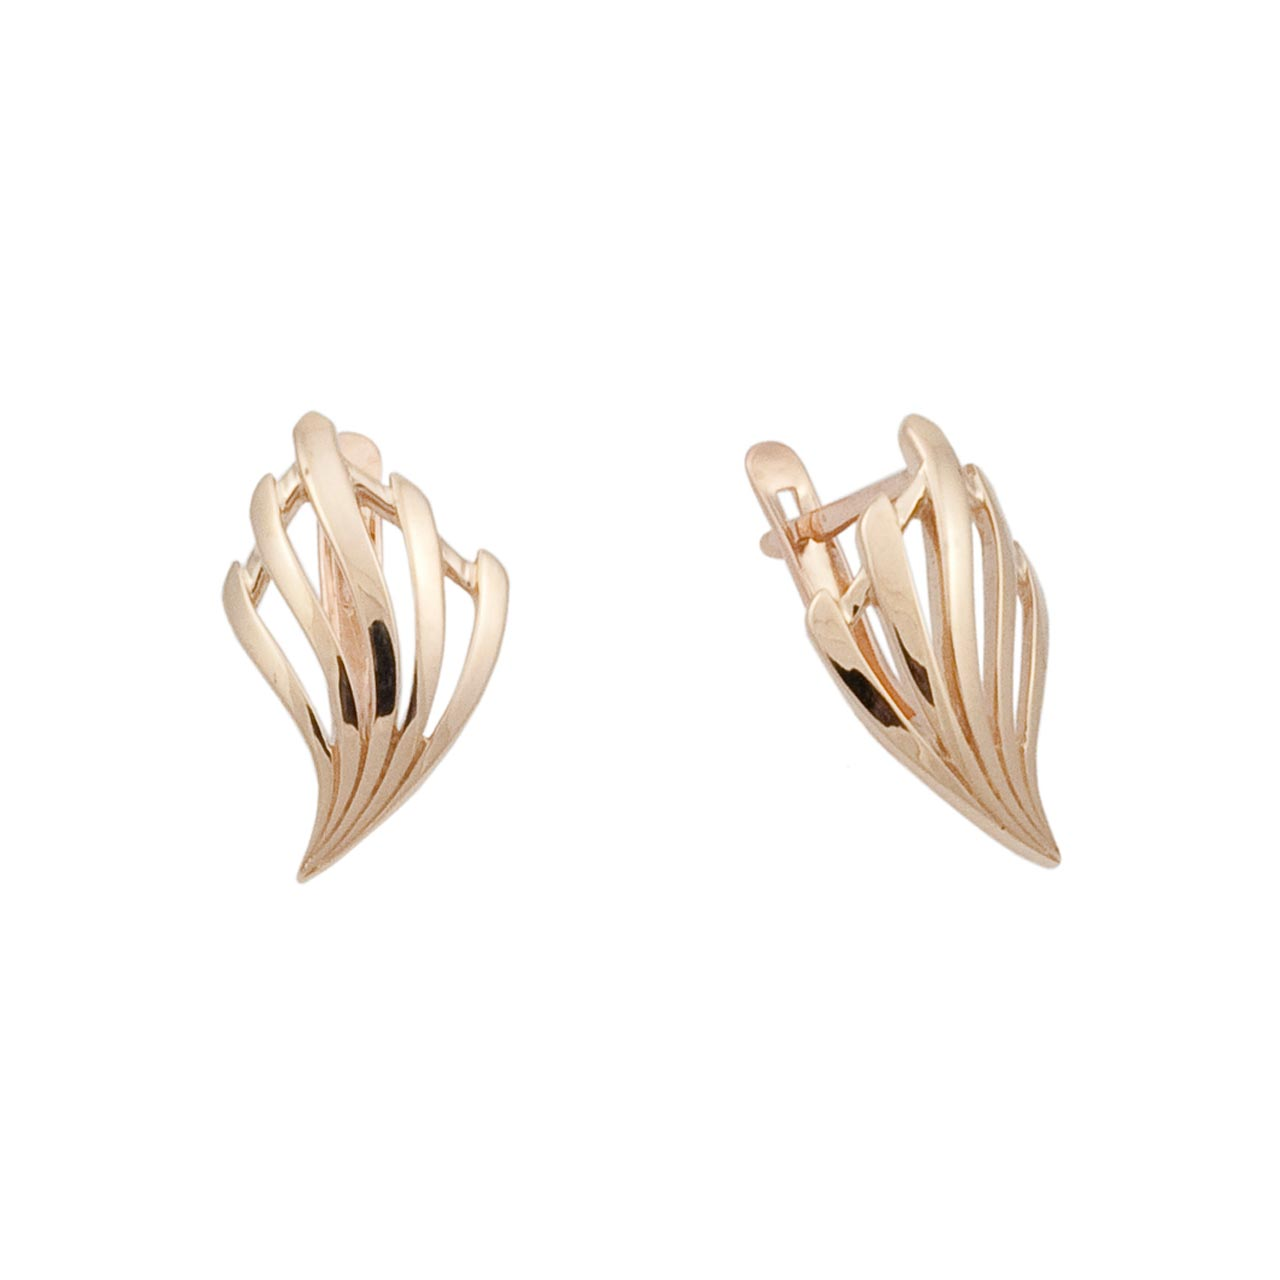 Torch look earrings